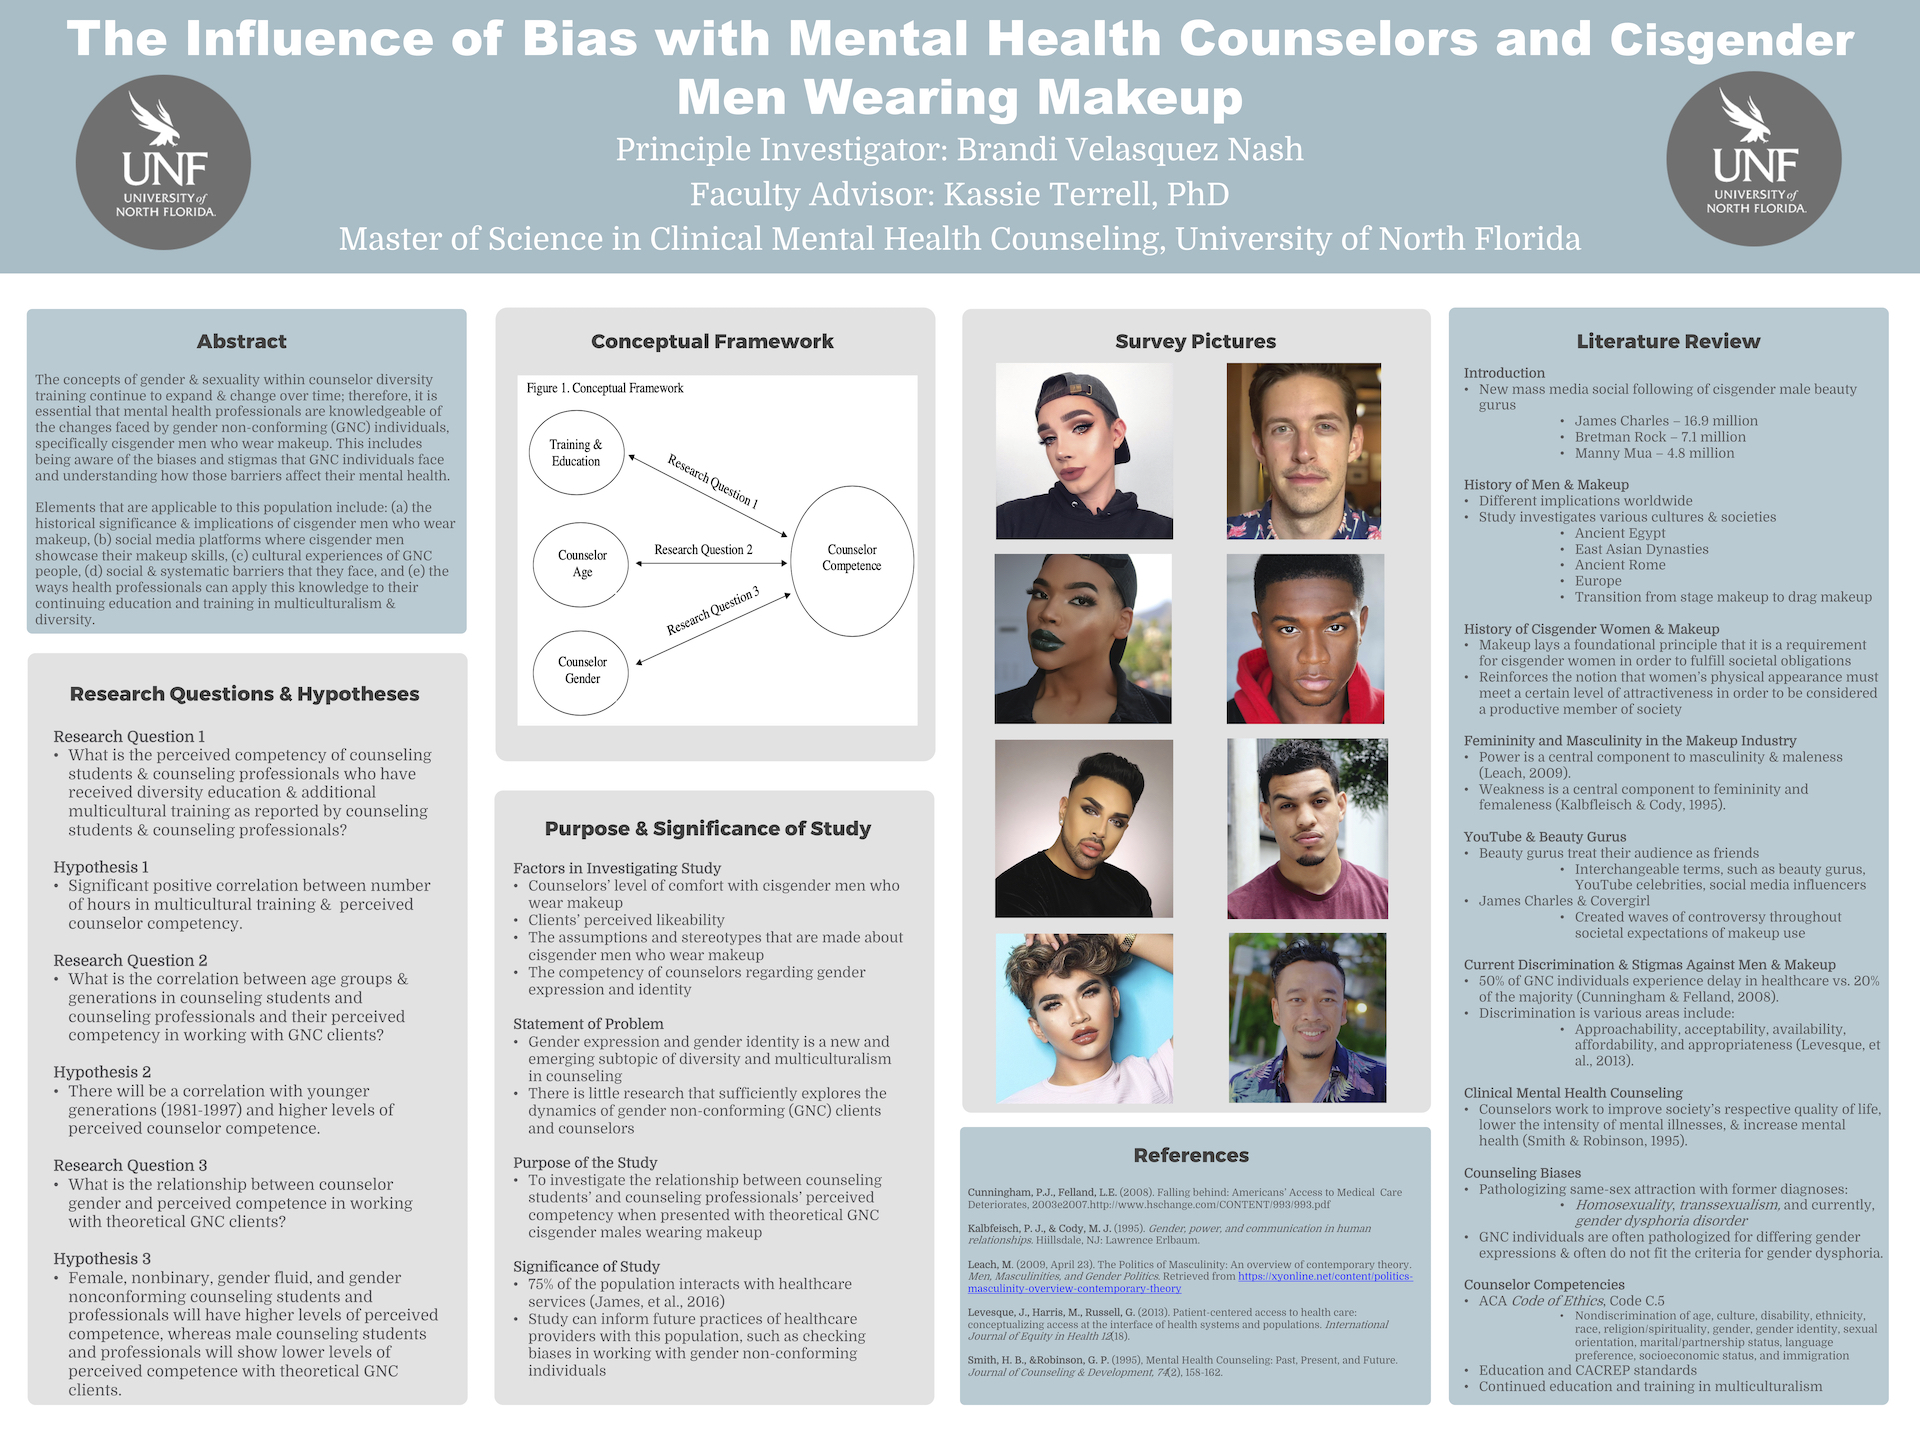 The Influence of Bias with Mental Health Counselors and Cisgender Men Wearing Makeup poster